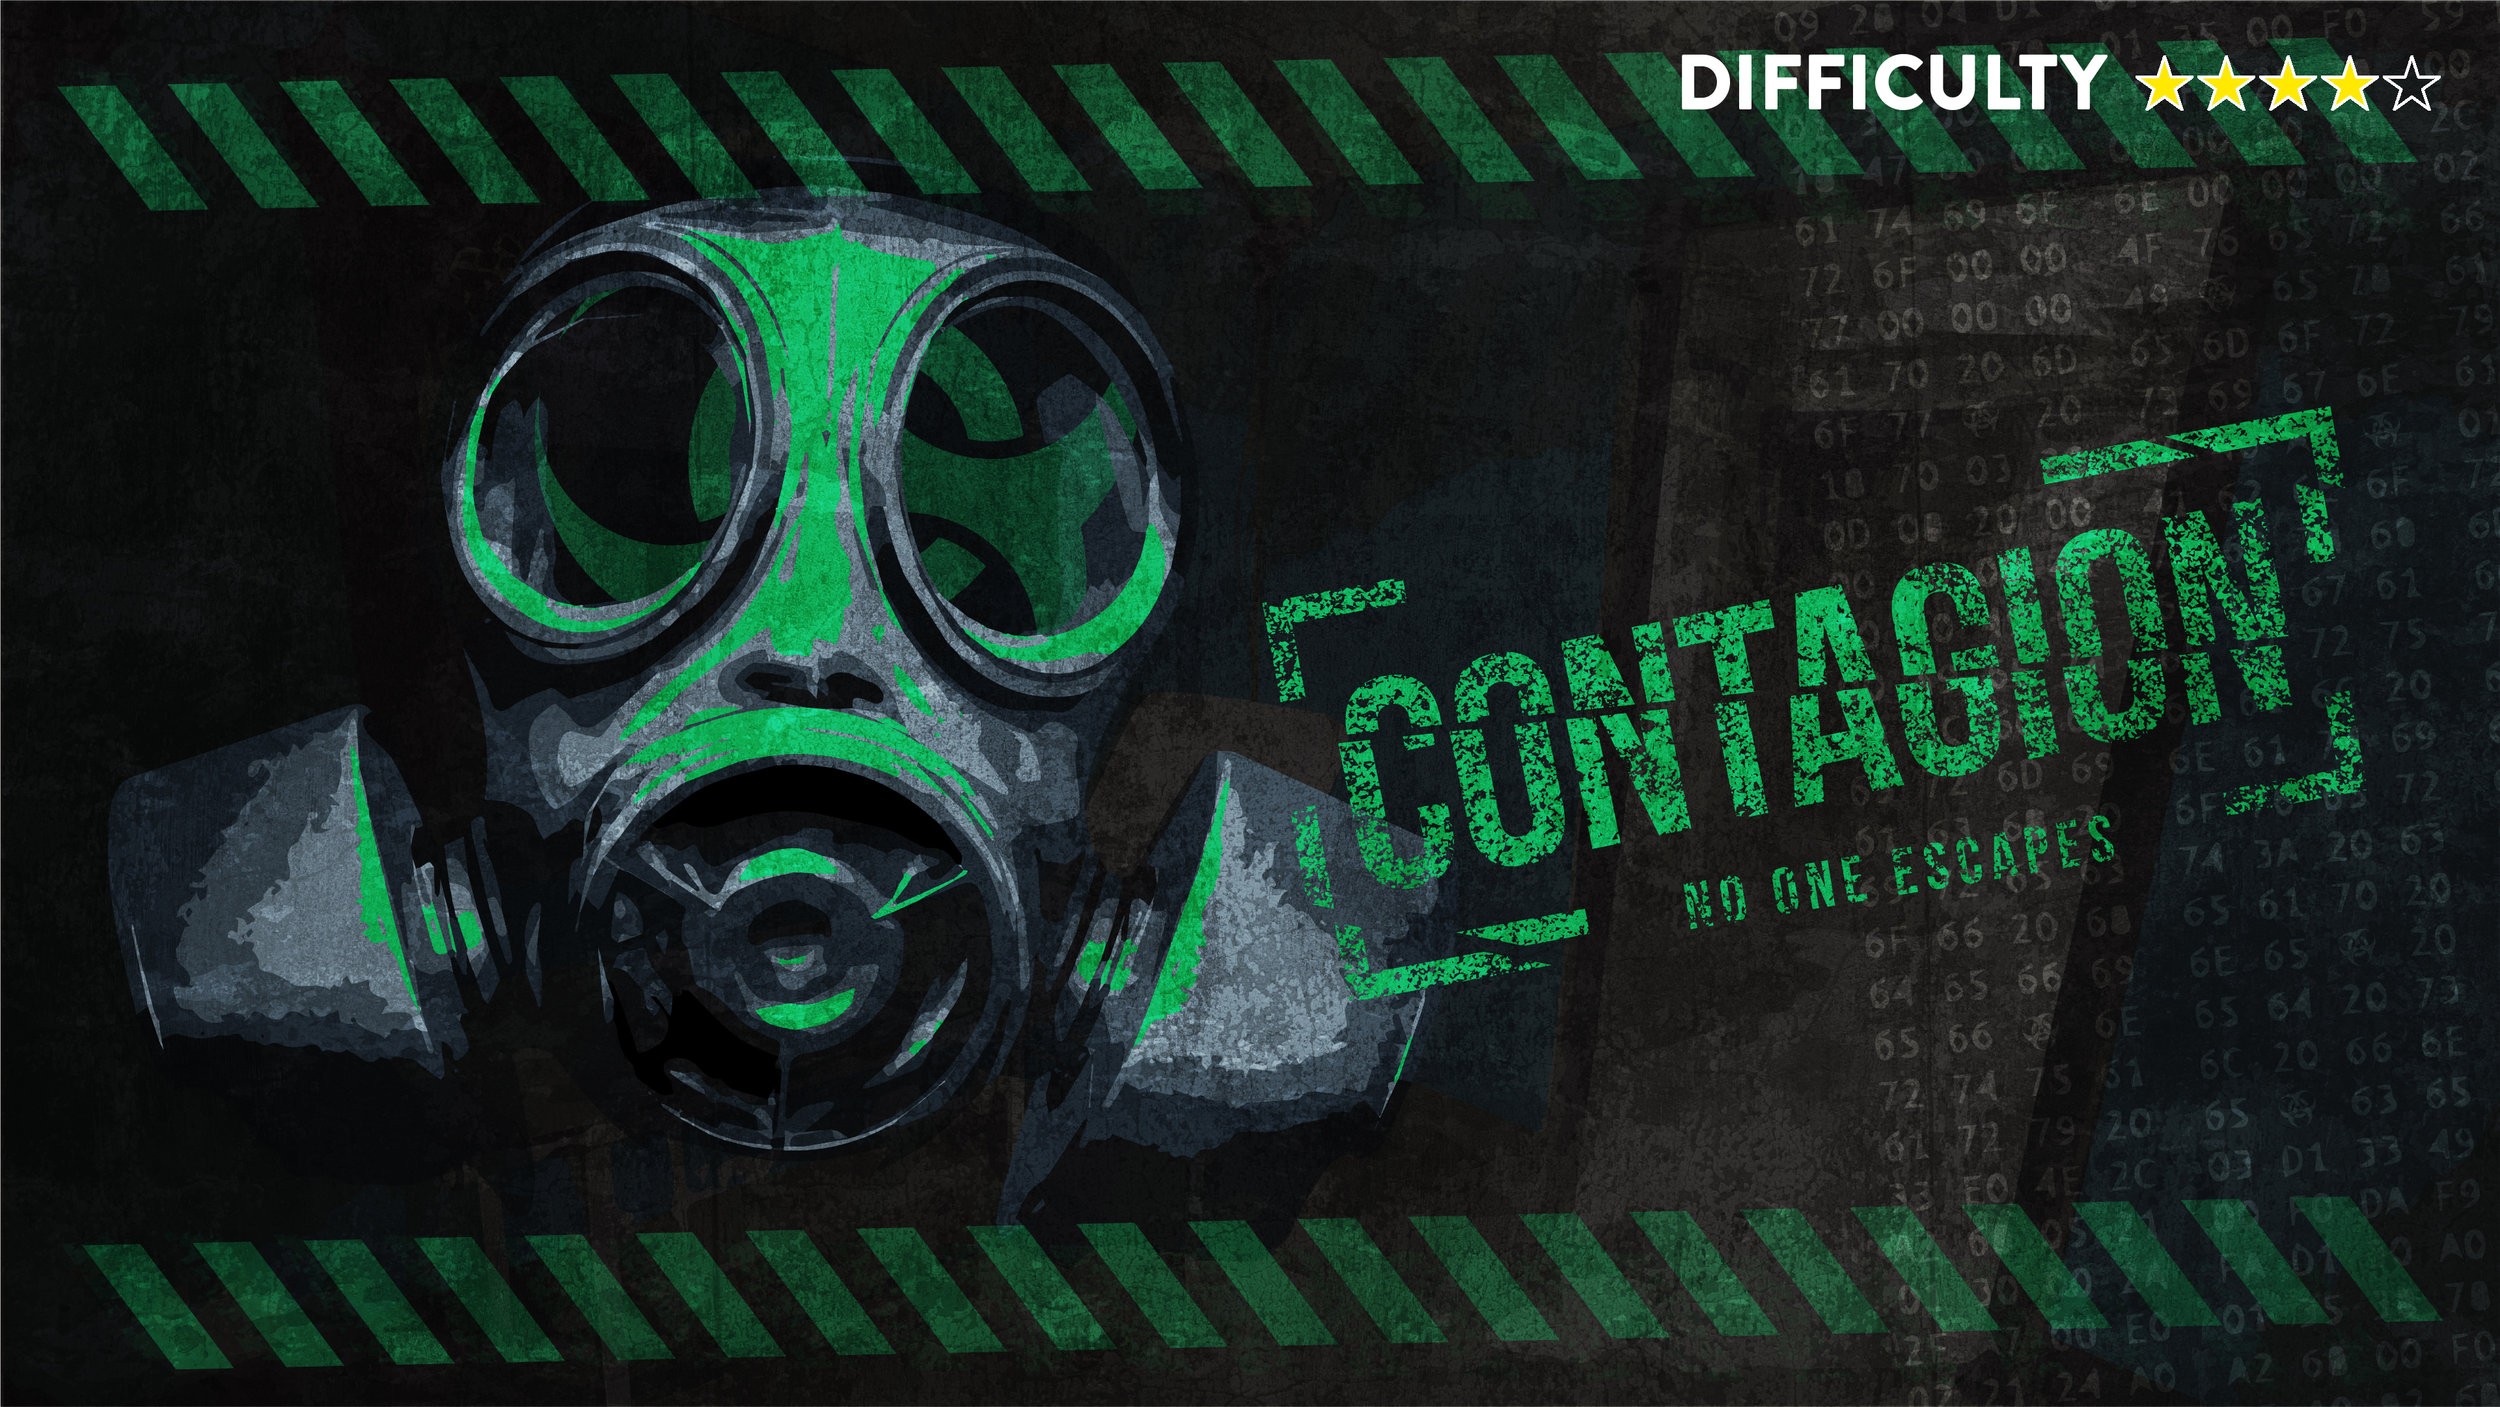 Contagion with difficulty.jpg